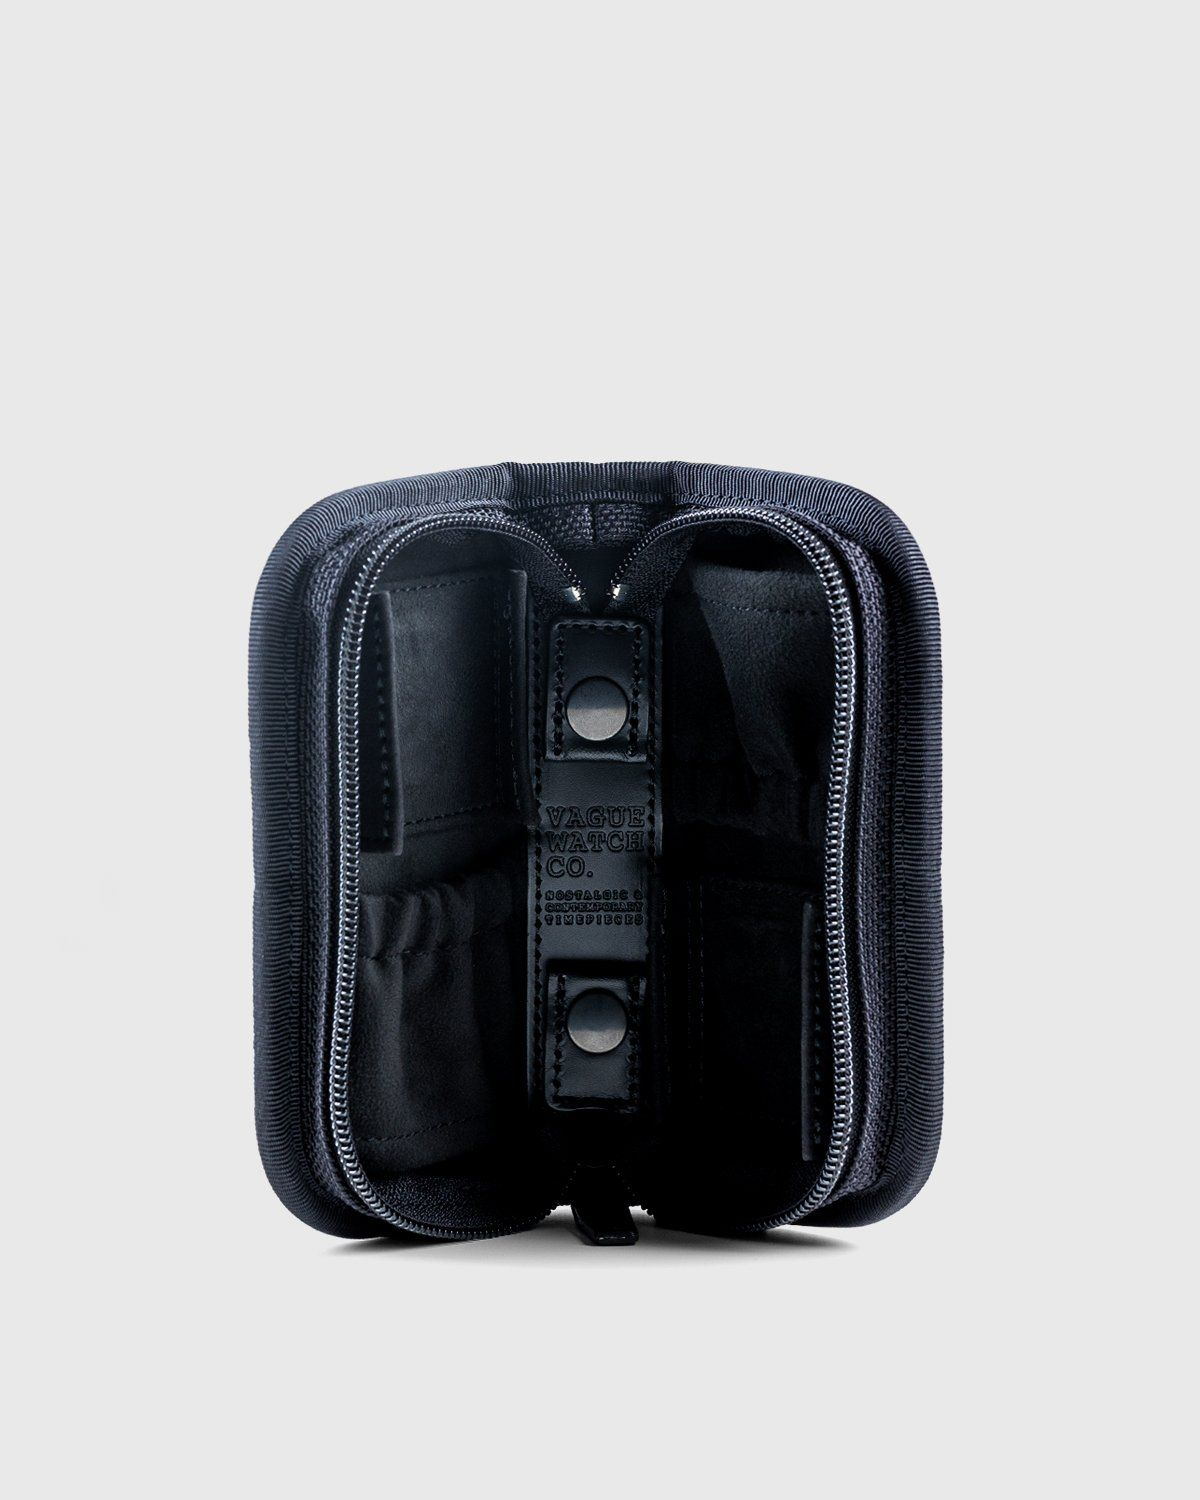 Porter — Watch Case For 2 Watches Black - Image 2